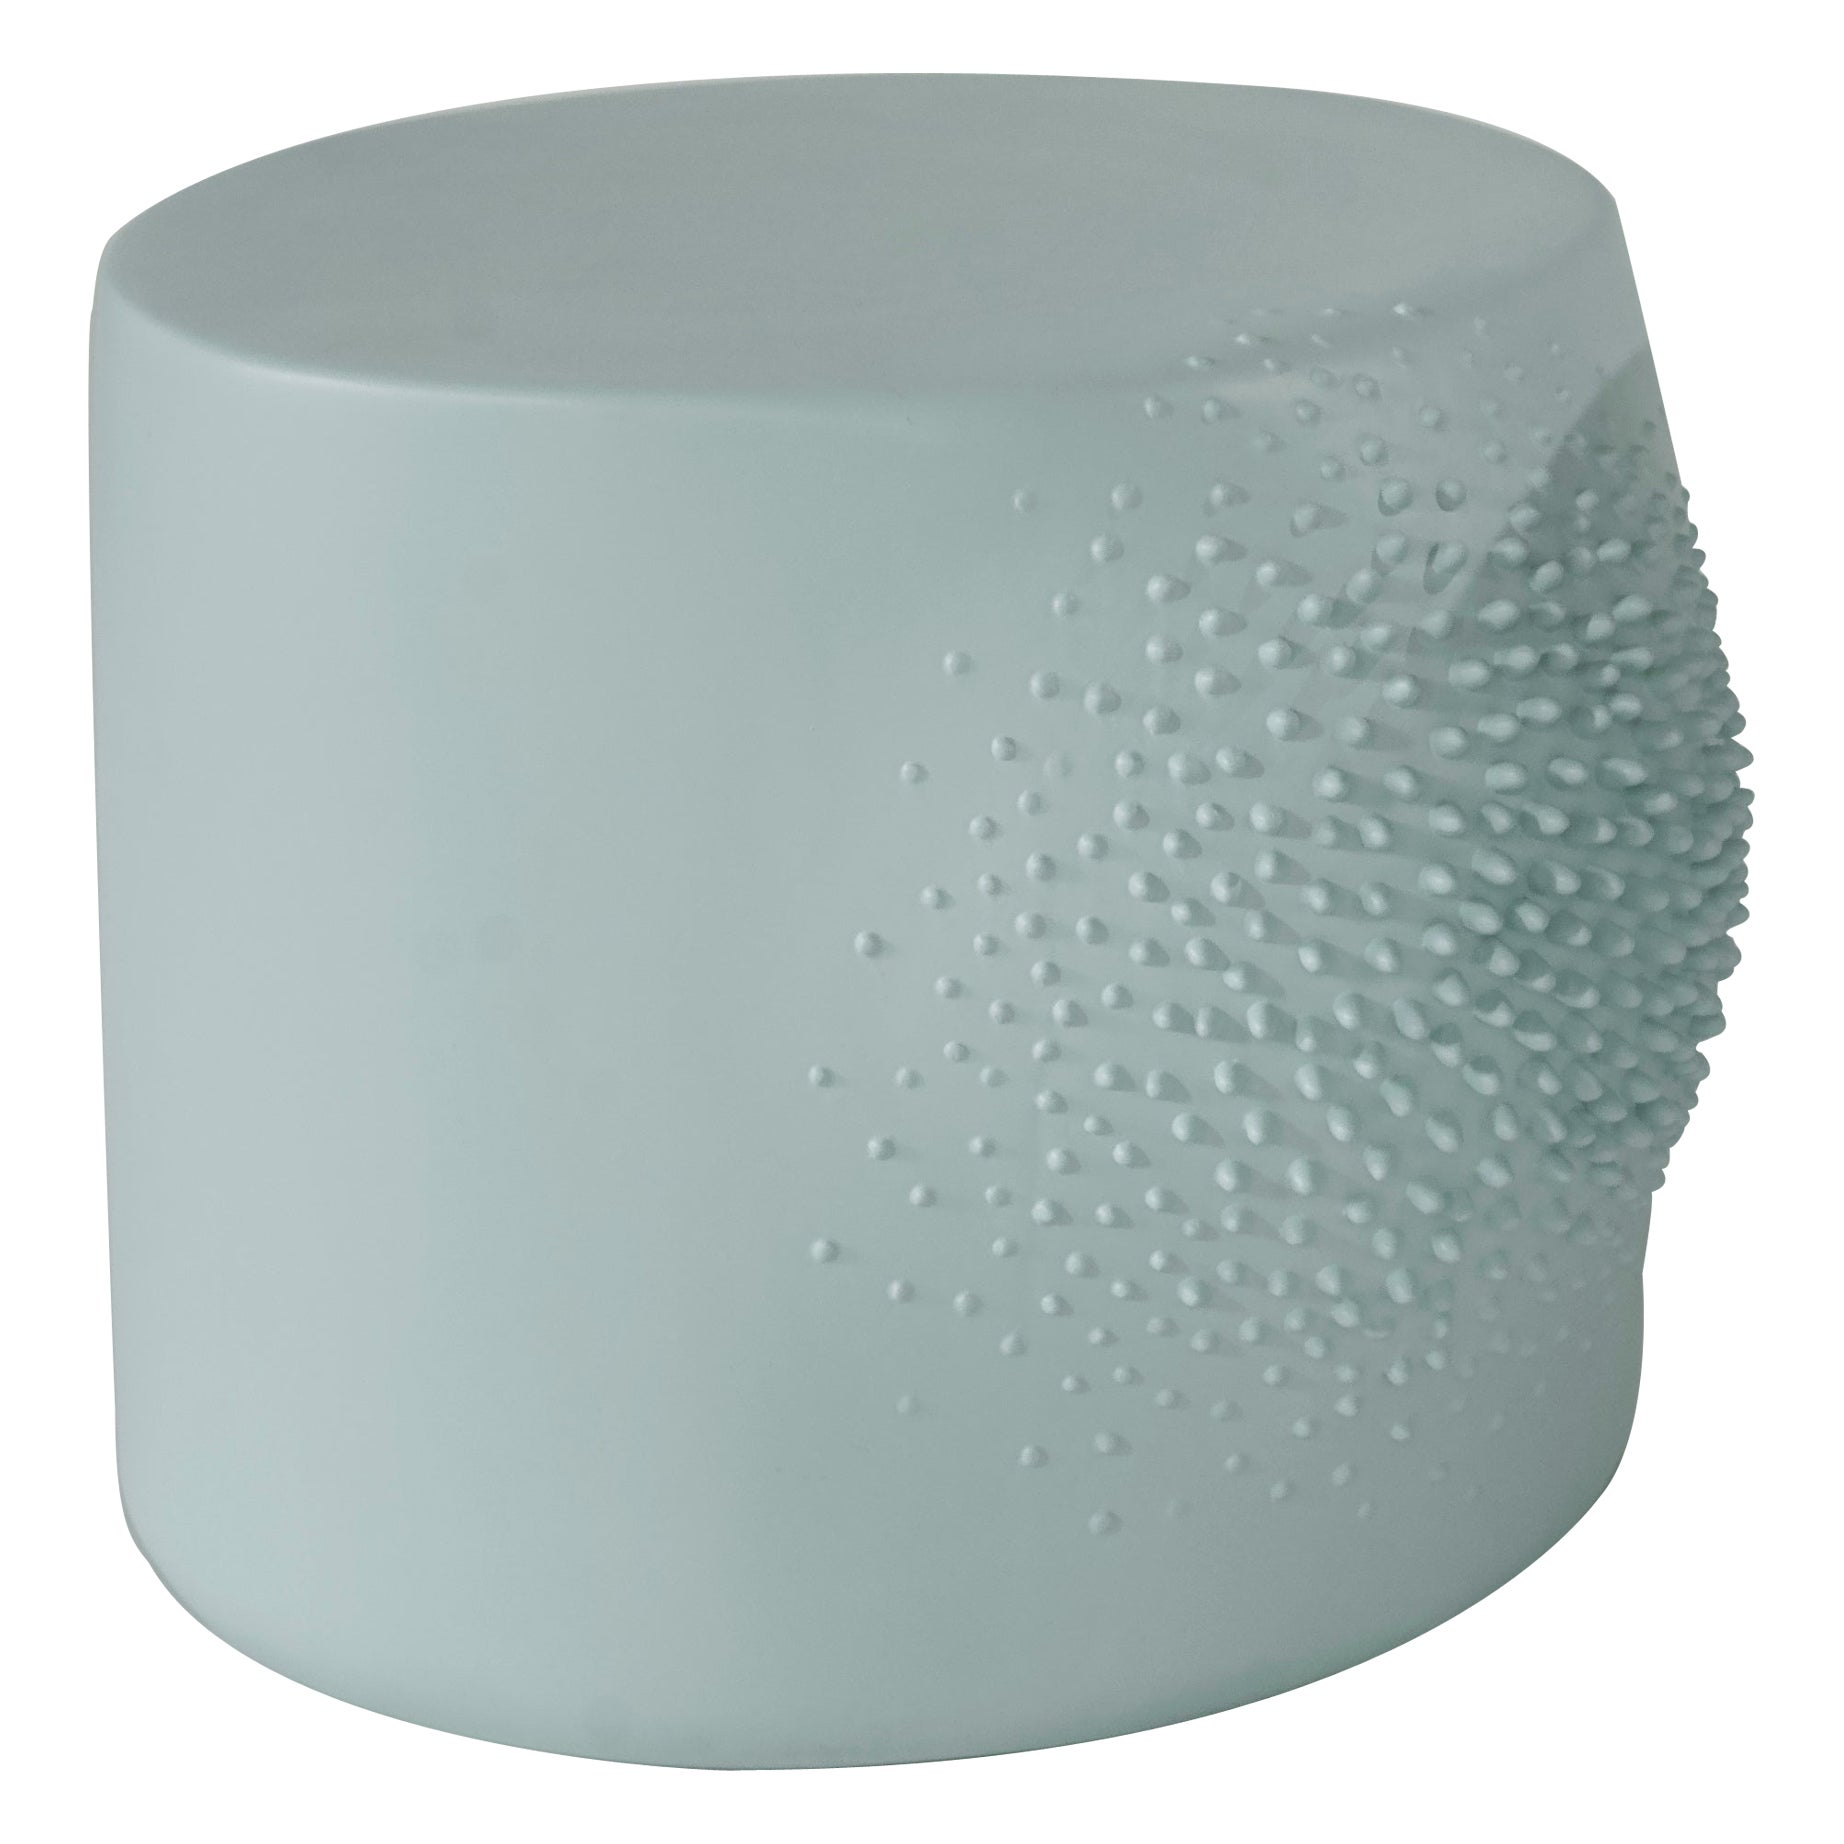 Bodily, Side Table by Tamara Barrage for House of Today